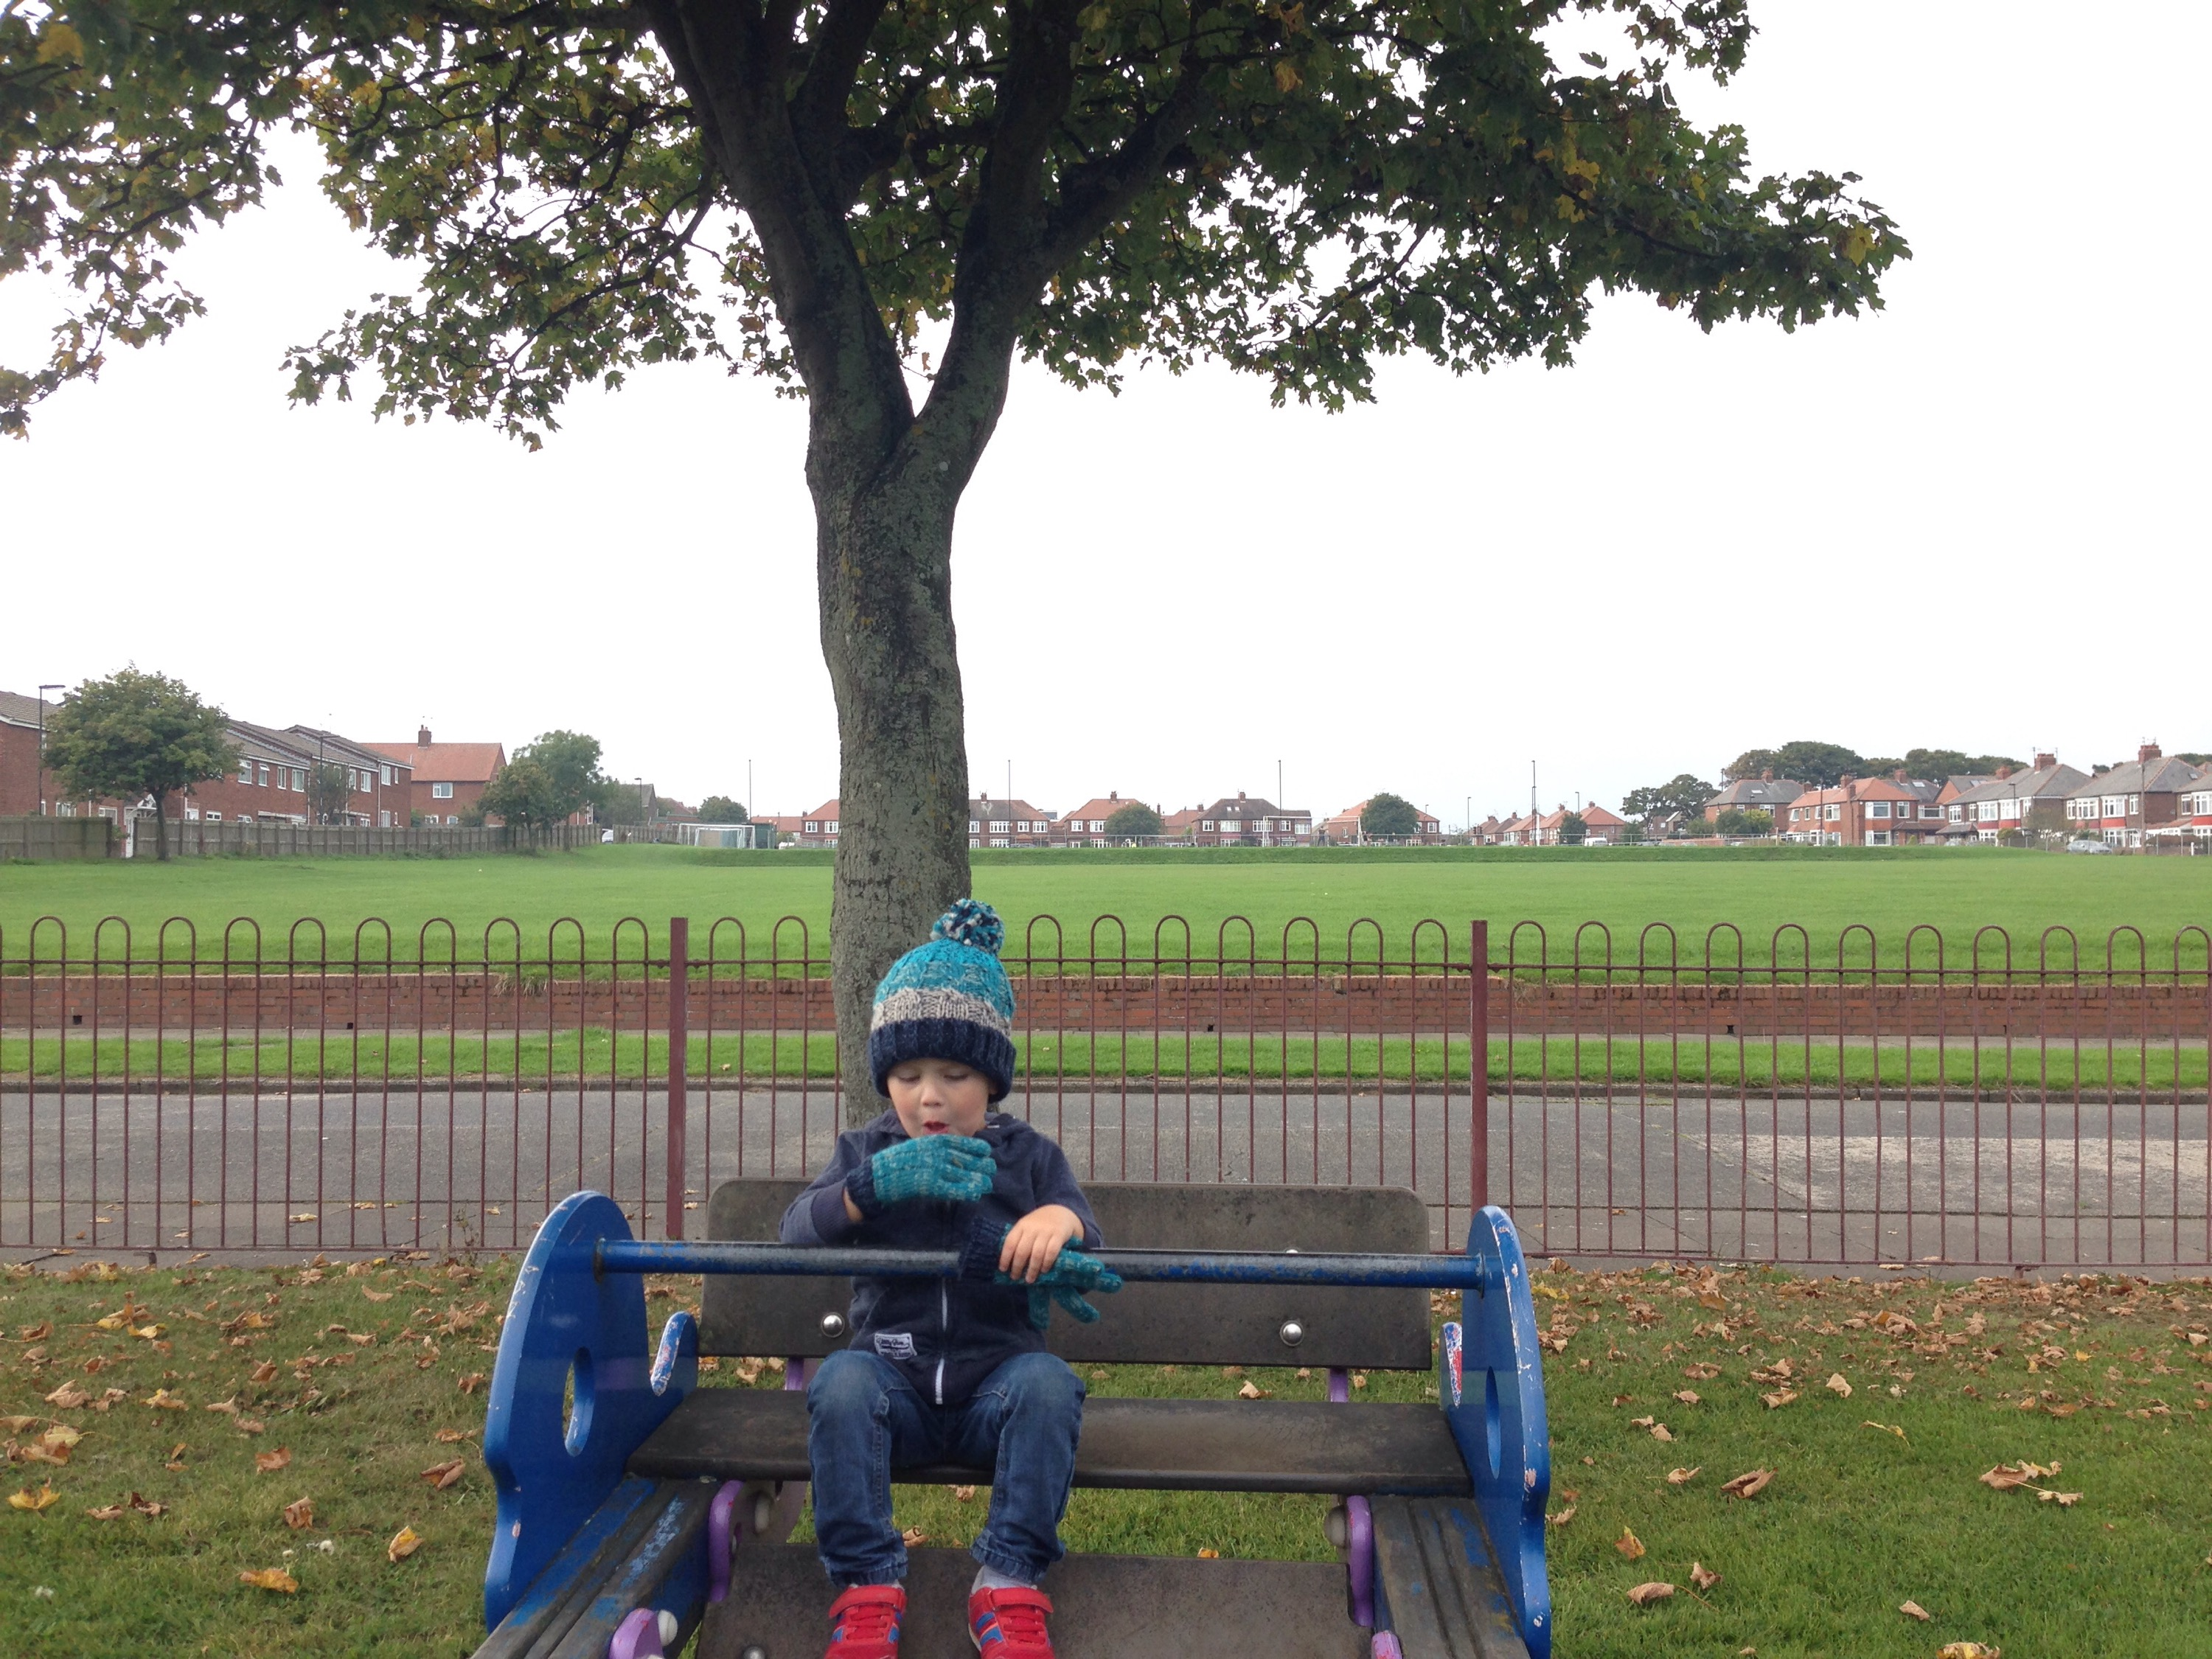 north tyneside playground link road autumn seesaw